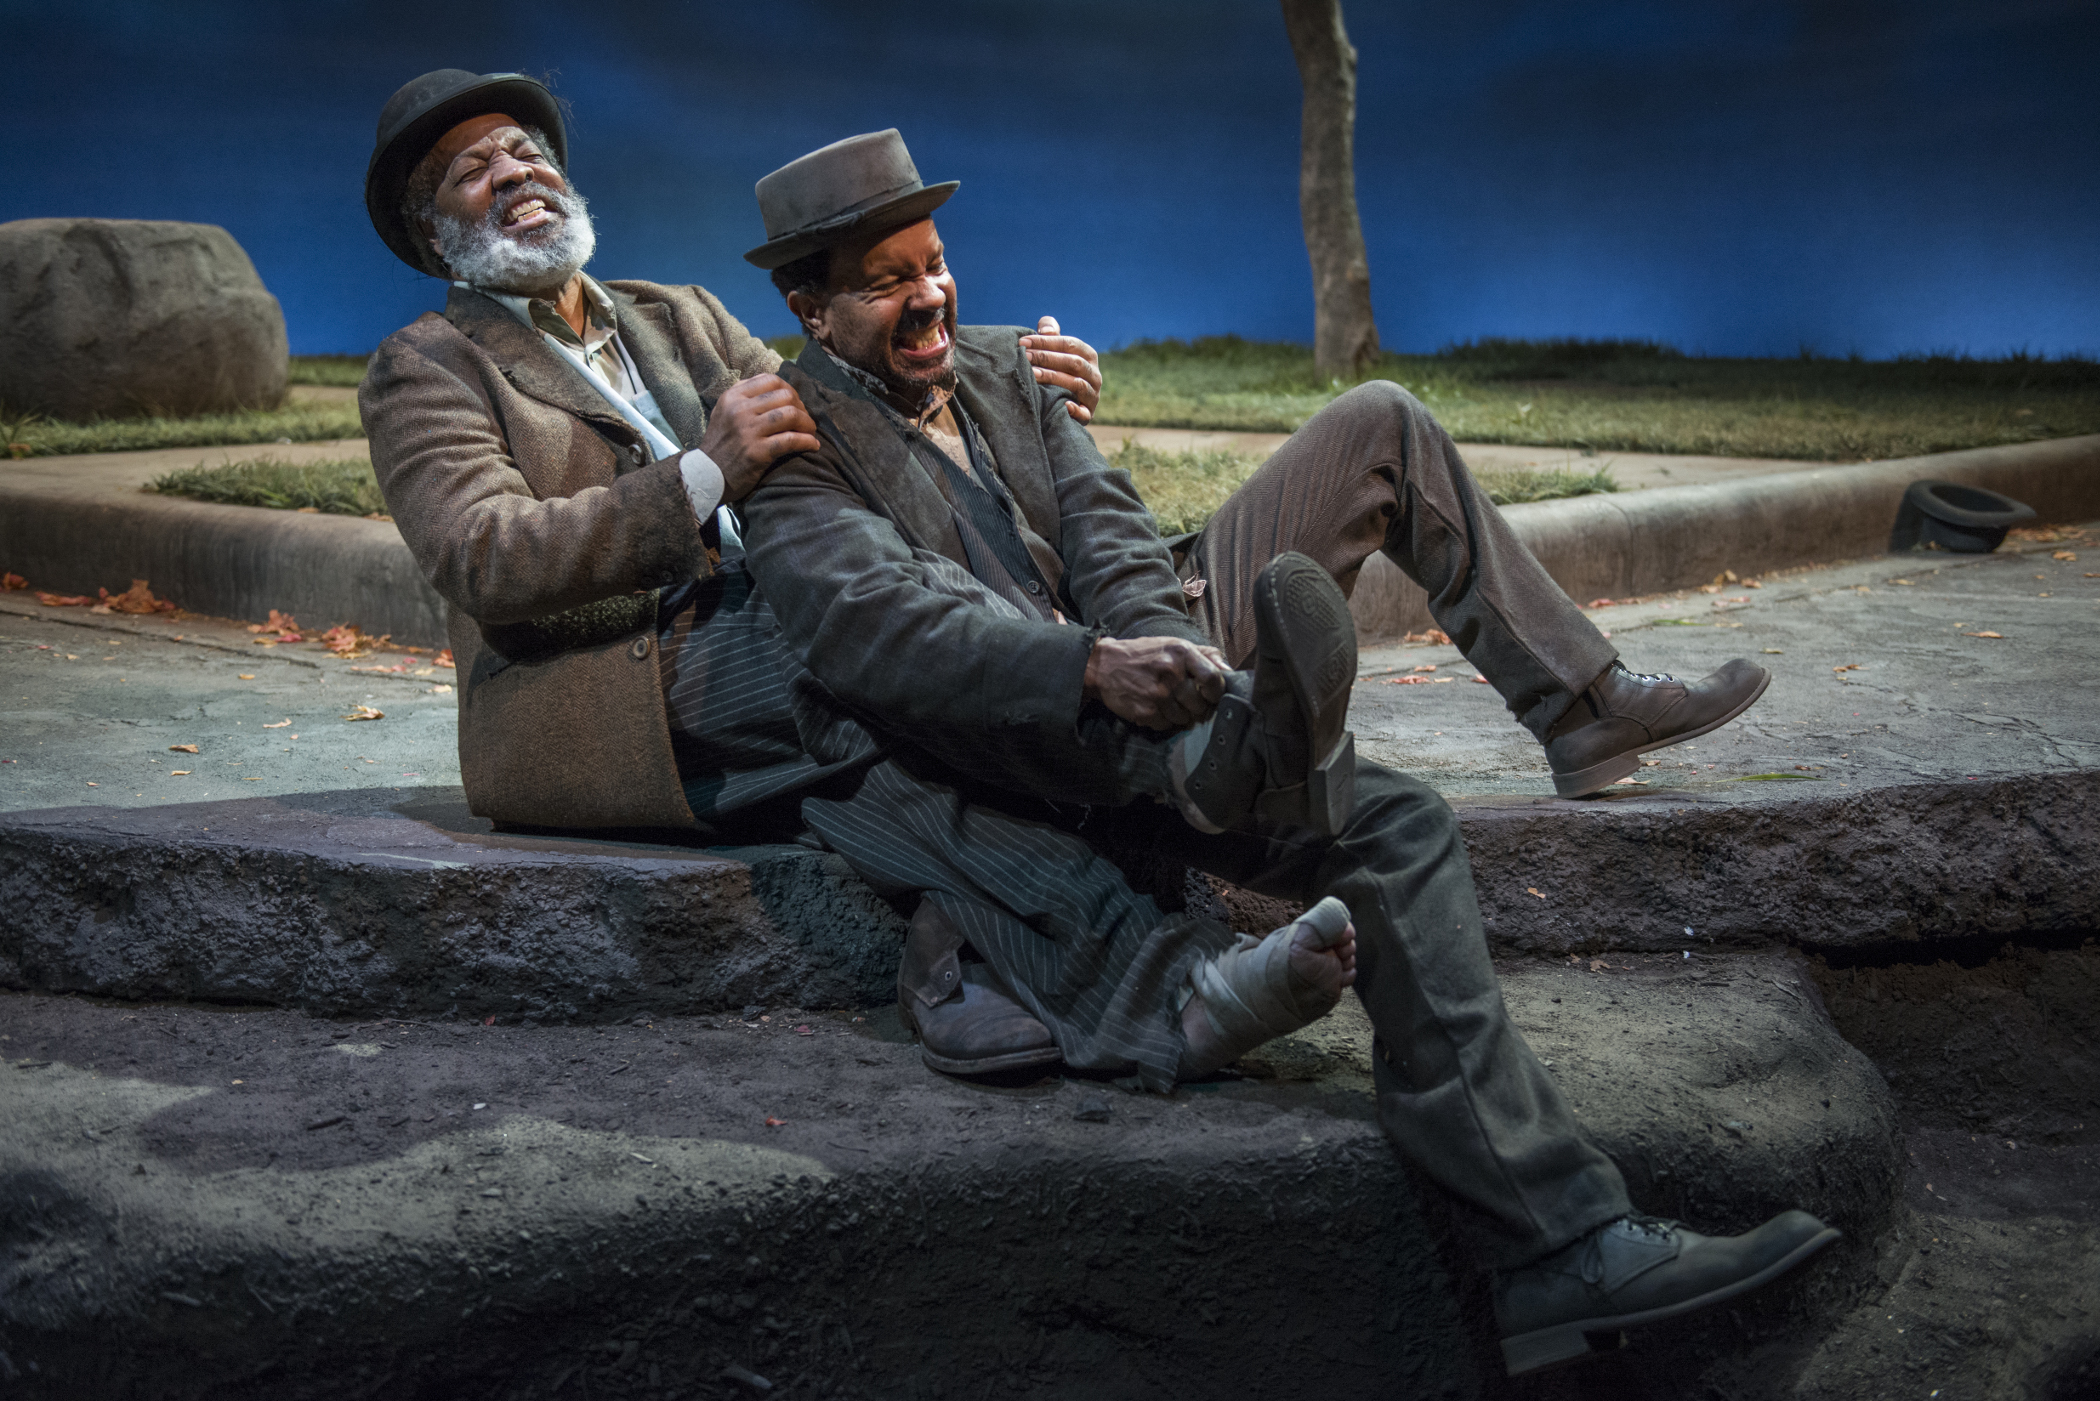 theater review waiting for godot court theatre in chicago alfredwilson allengilmore